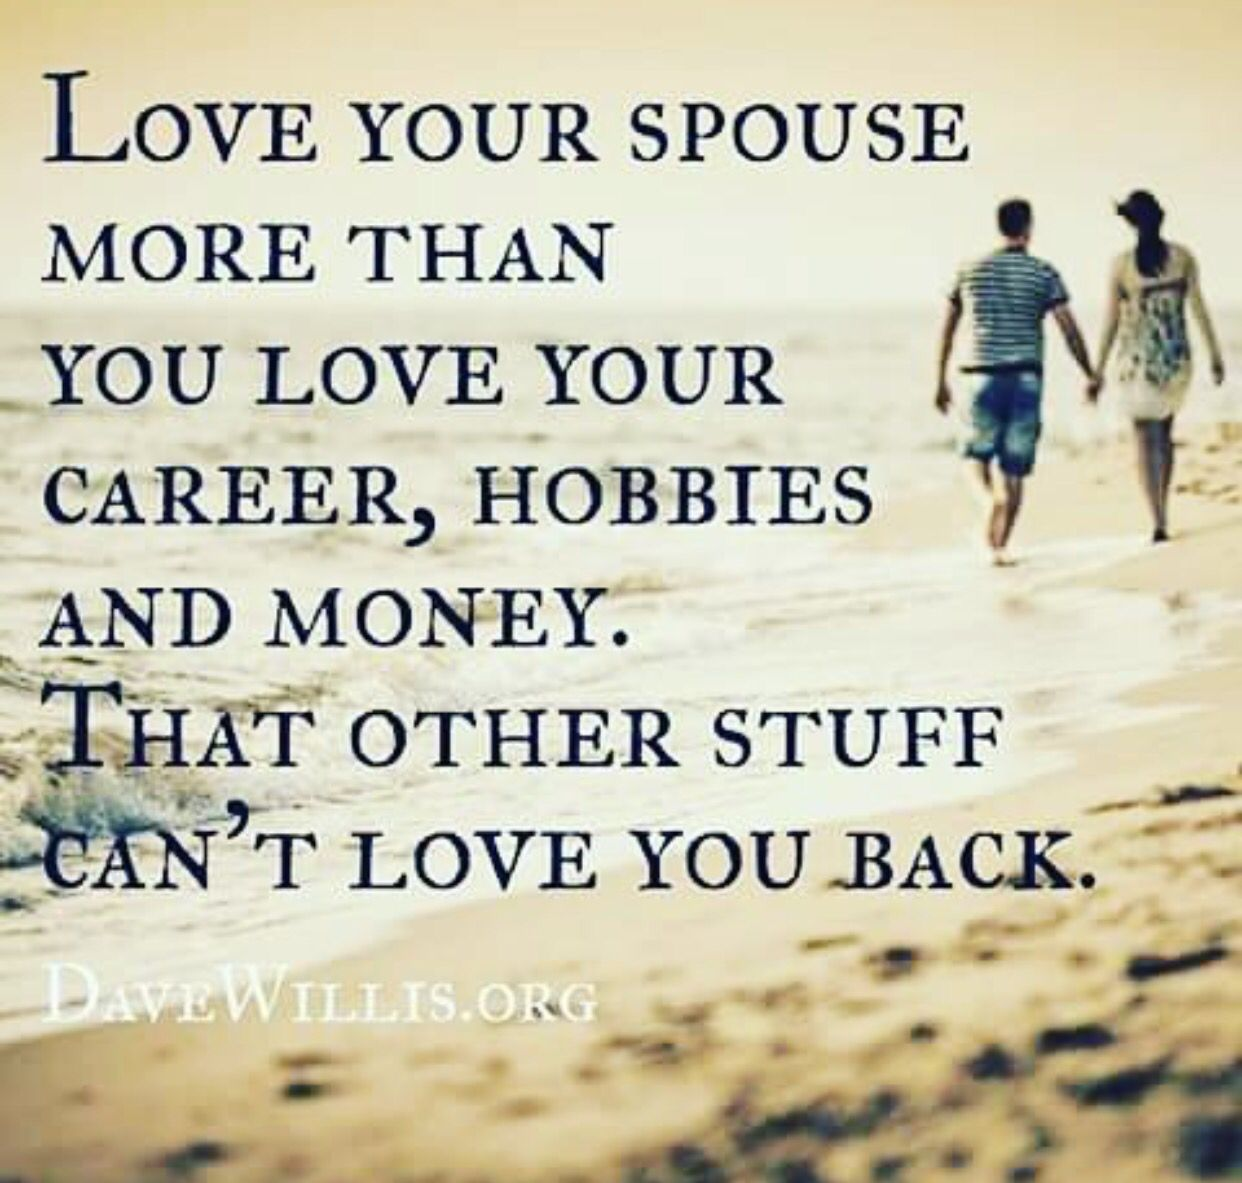 Family Life Quotes Pinjennifer Desrosiers Jacobs On Quotes  Pinterest  Lds